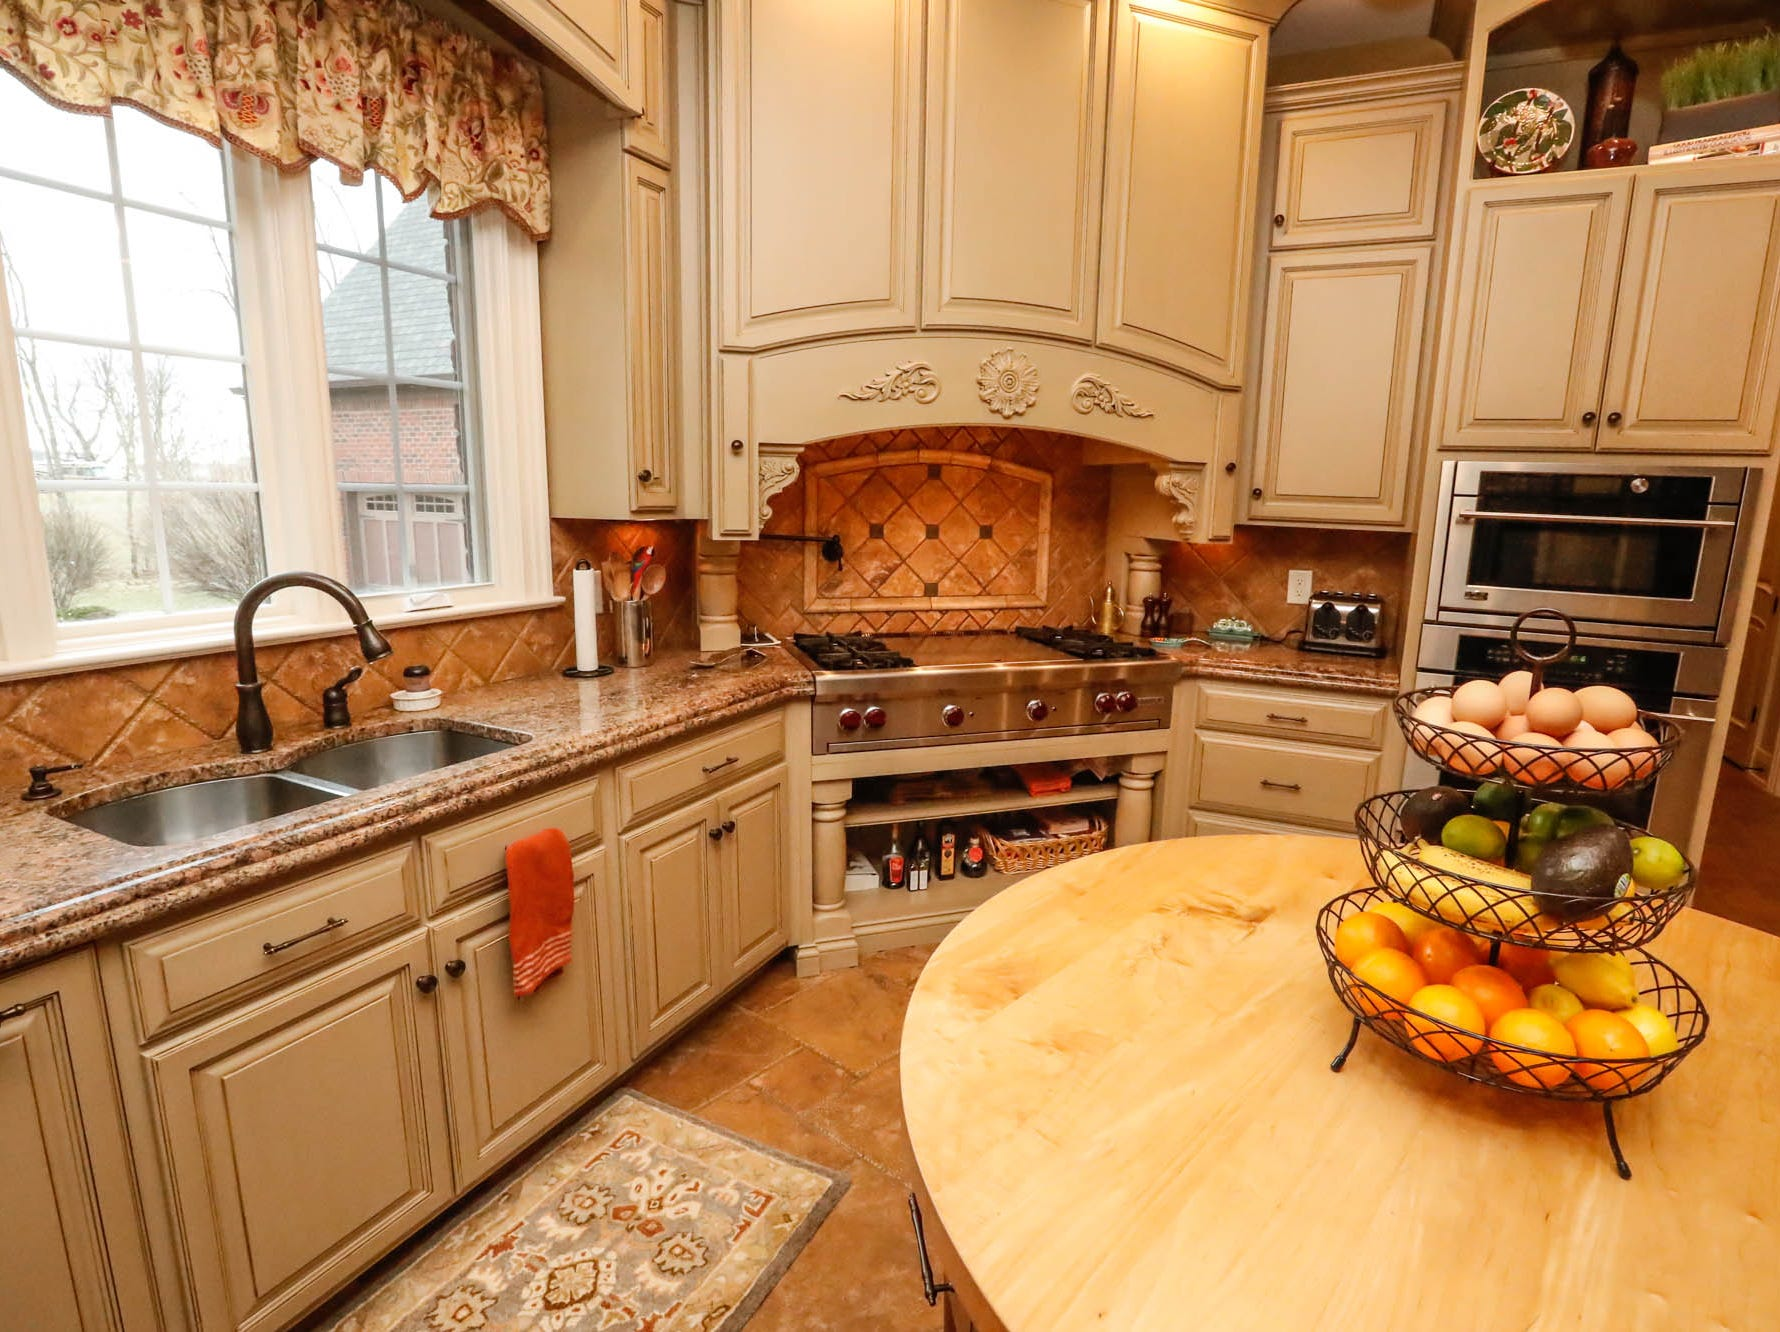 The open plan kitchen features a round chopping island,  rustic Tuscan tile, and a Wolf stove with griddle in a traditional $2m home up for sale in Bargersville Ind. on Wednesday, Jan. 9, 2019. The house sits on 8.1 acres.